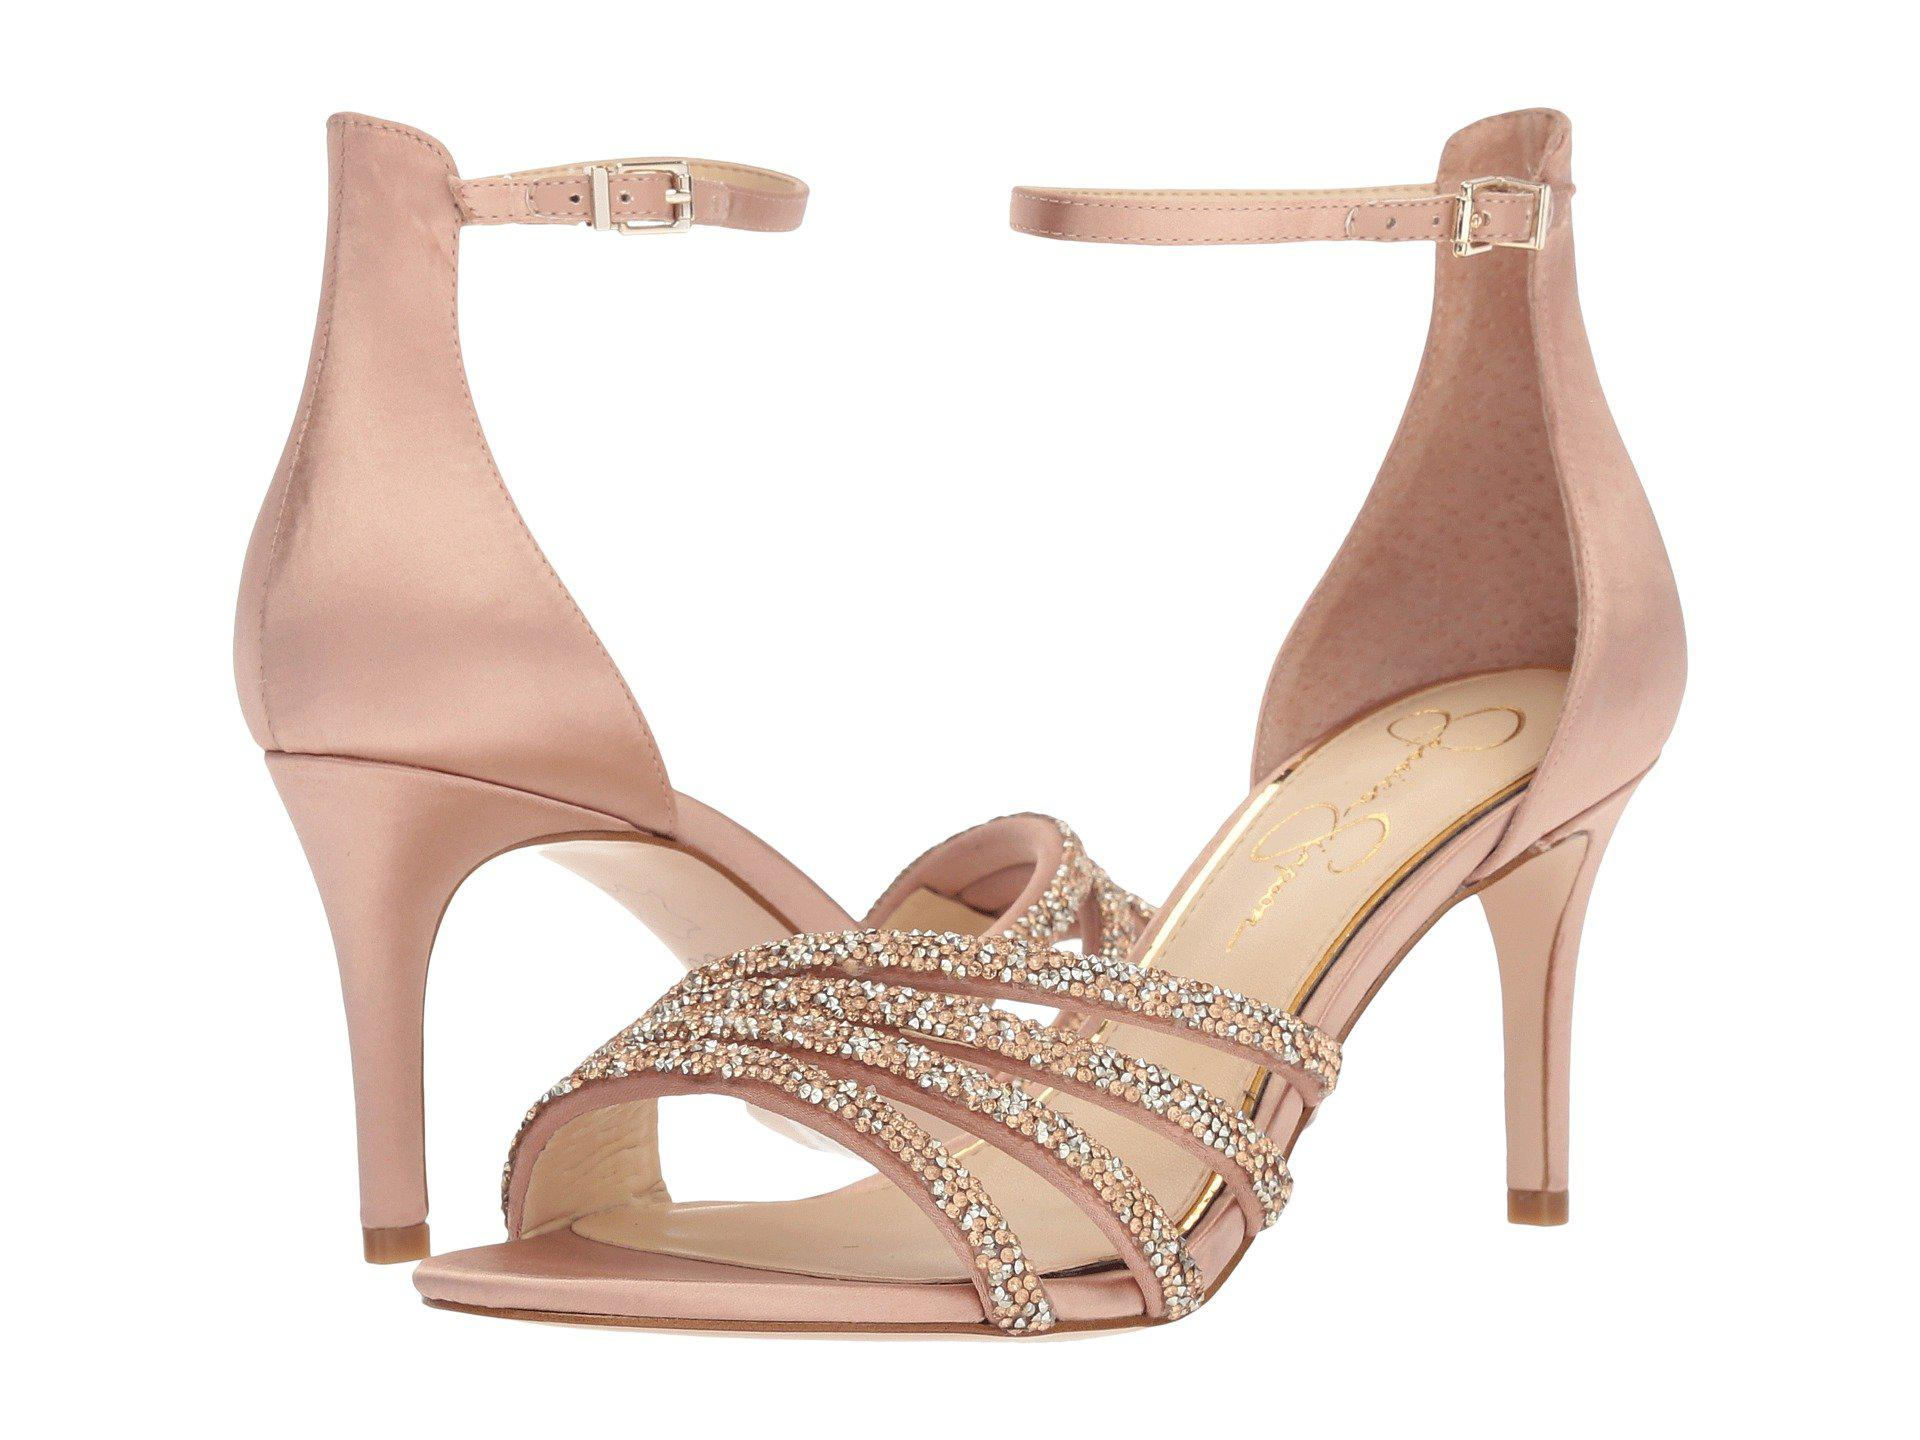 c8c7dd9ac6e4 Lyst - Jessica Simpson Paveny Heeled Sandal in Natural - Save 50%